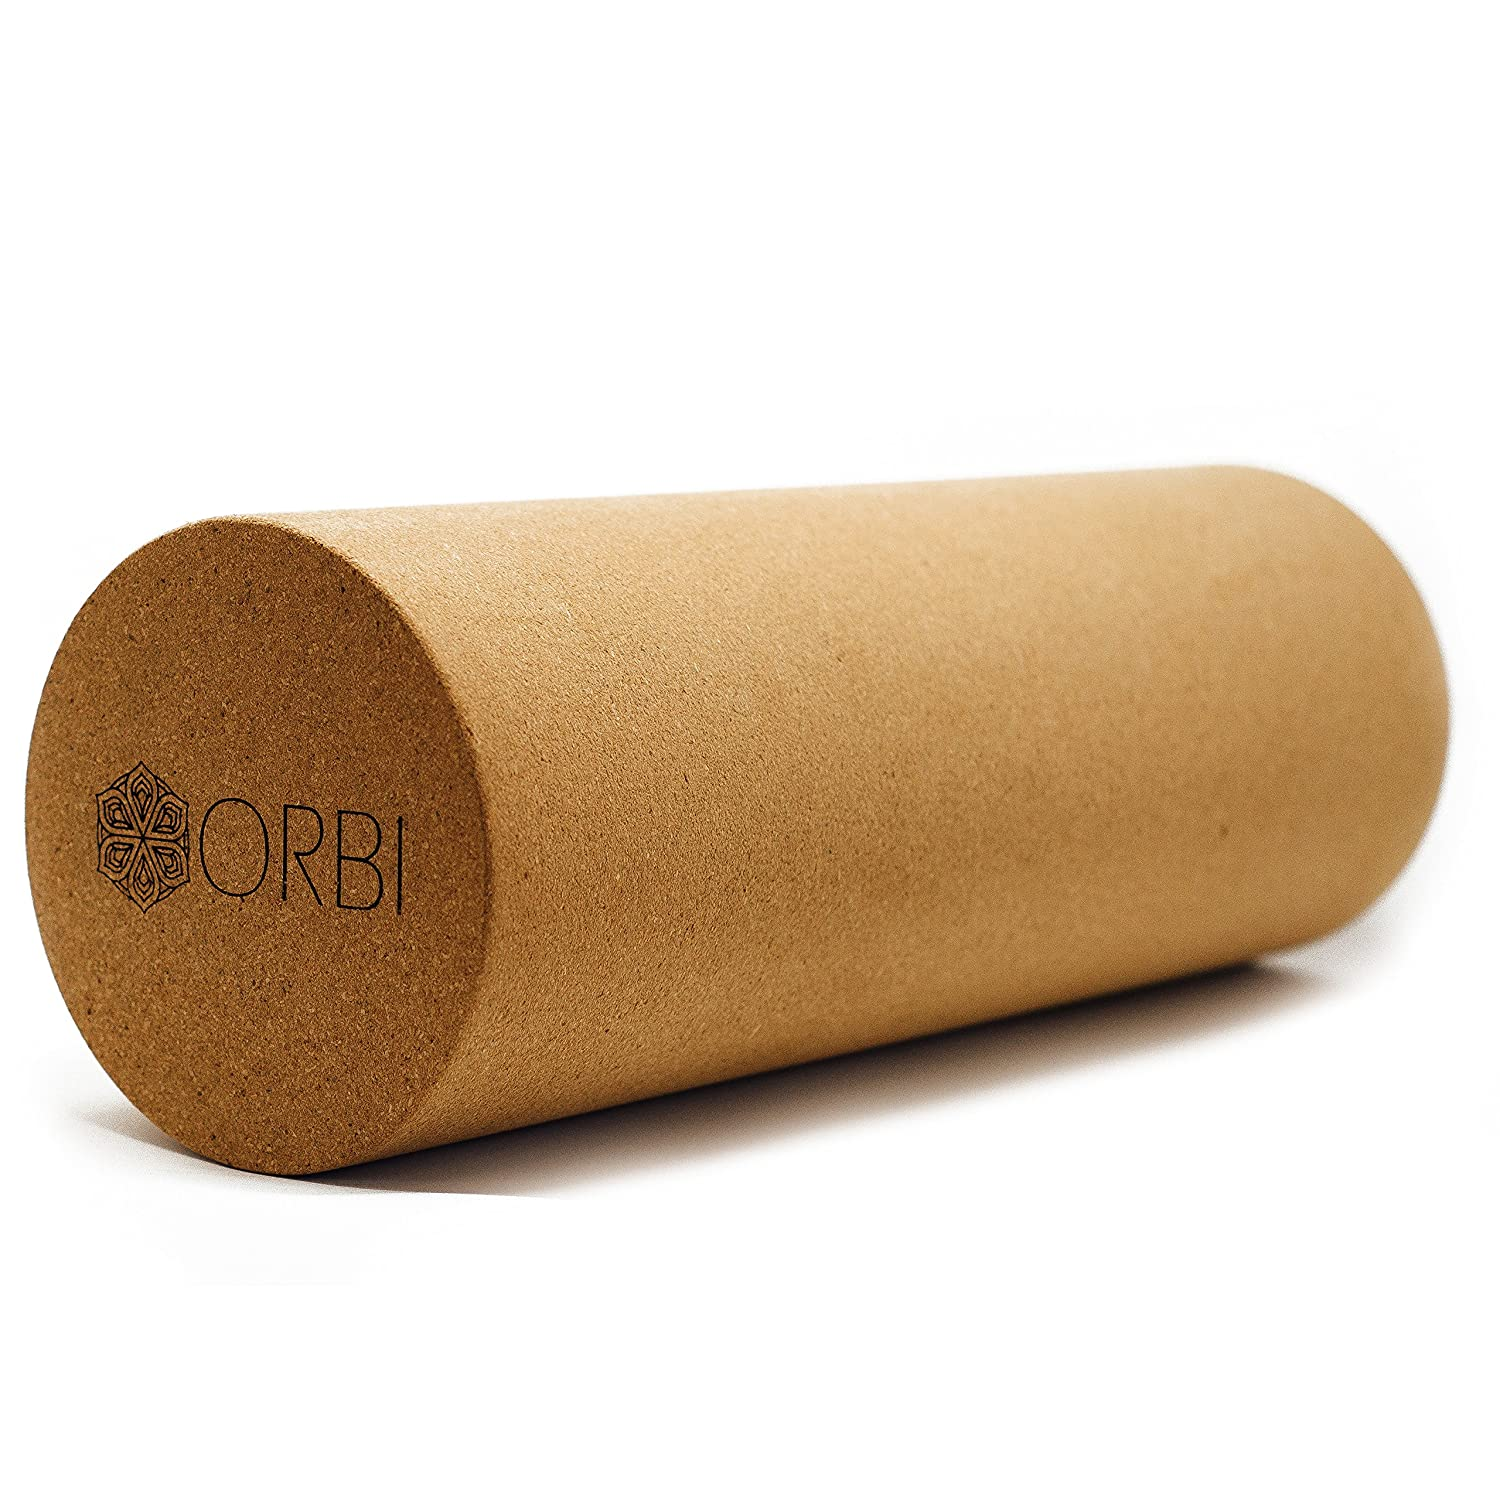 Eco-Friendly /& Non-Toxic Trigger Point Therapy Massage Roller Peace Essential 100/% NATURAL CORK Foam Roller for Physical Therapy /& Exercise Extra Firm and Holds Shape Better than Petroleum Based Foam Rollers